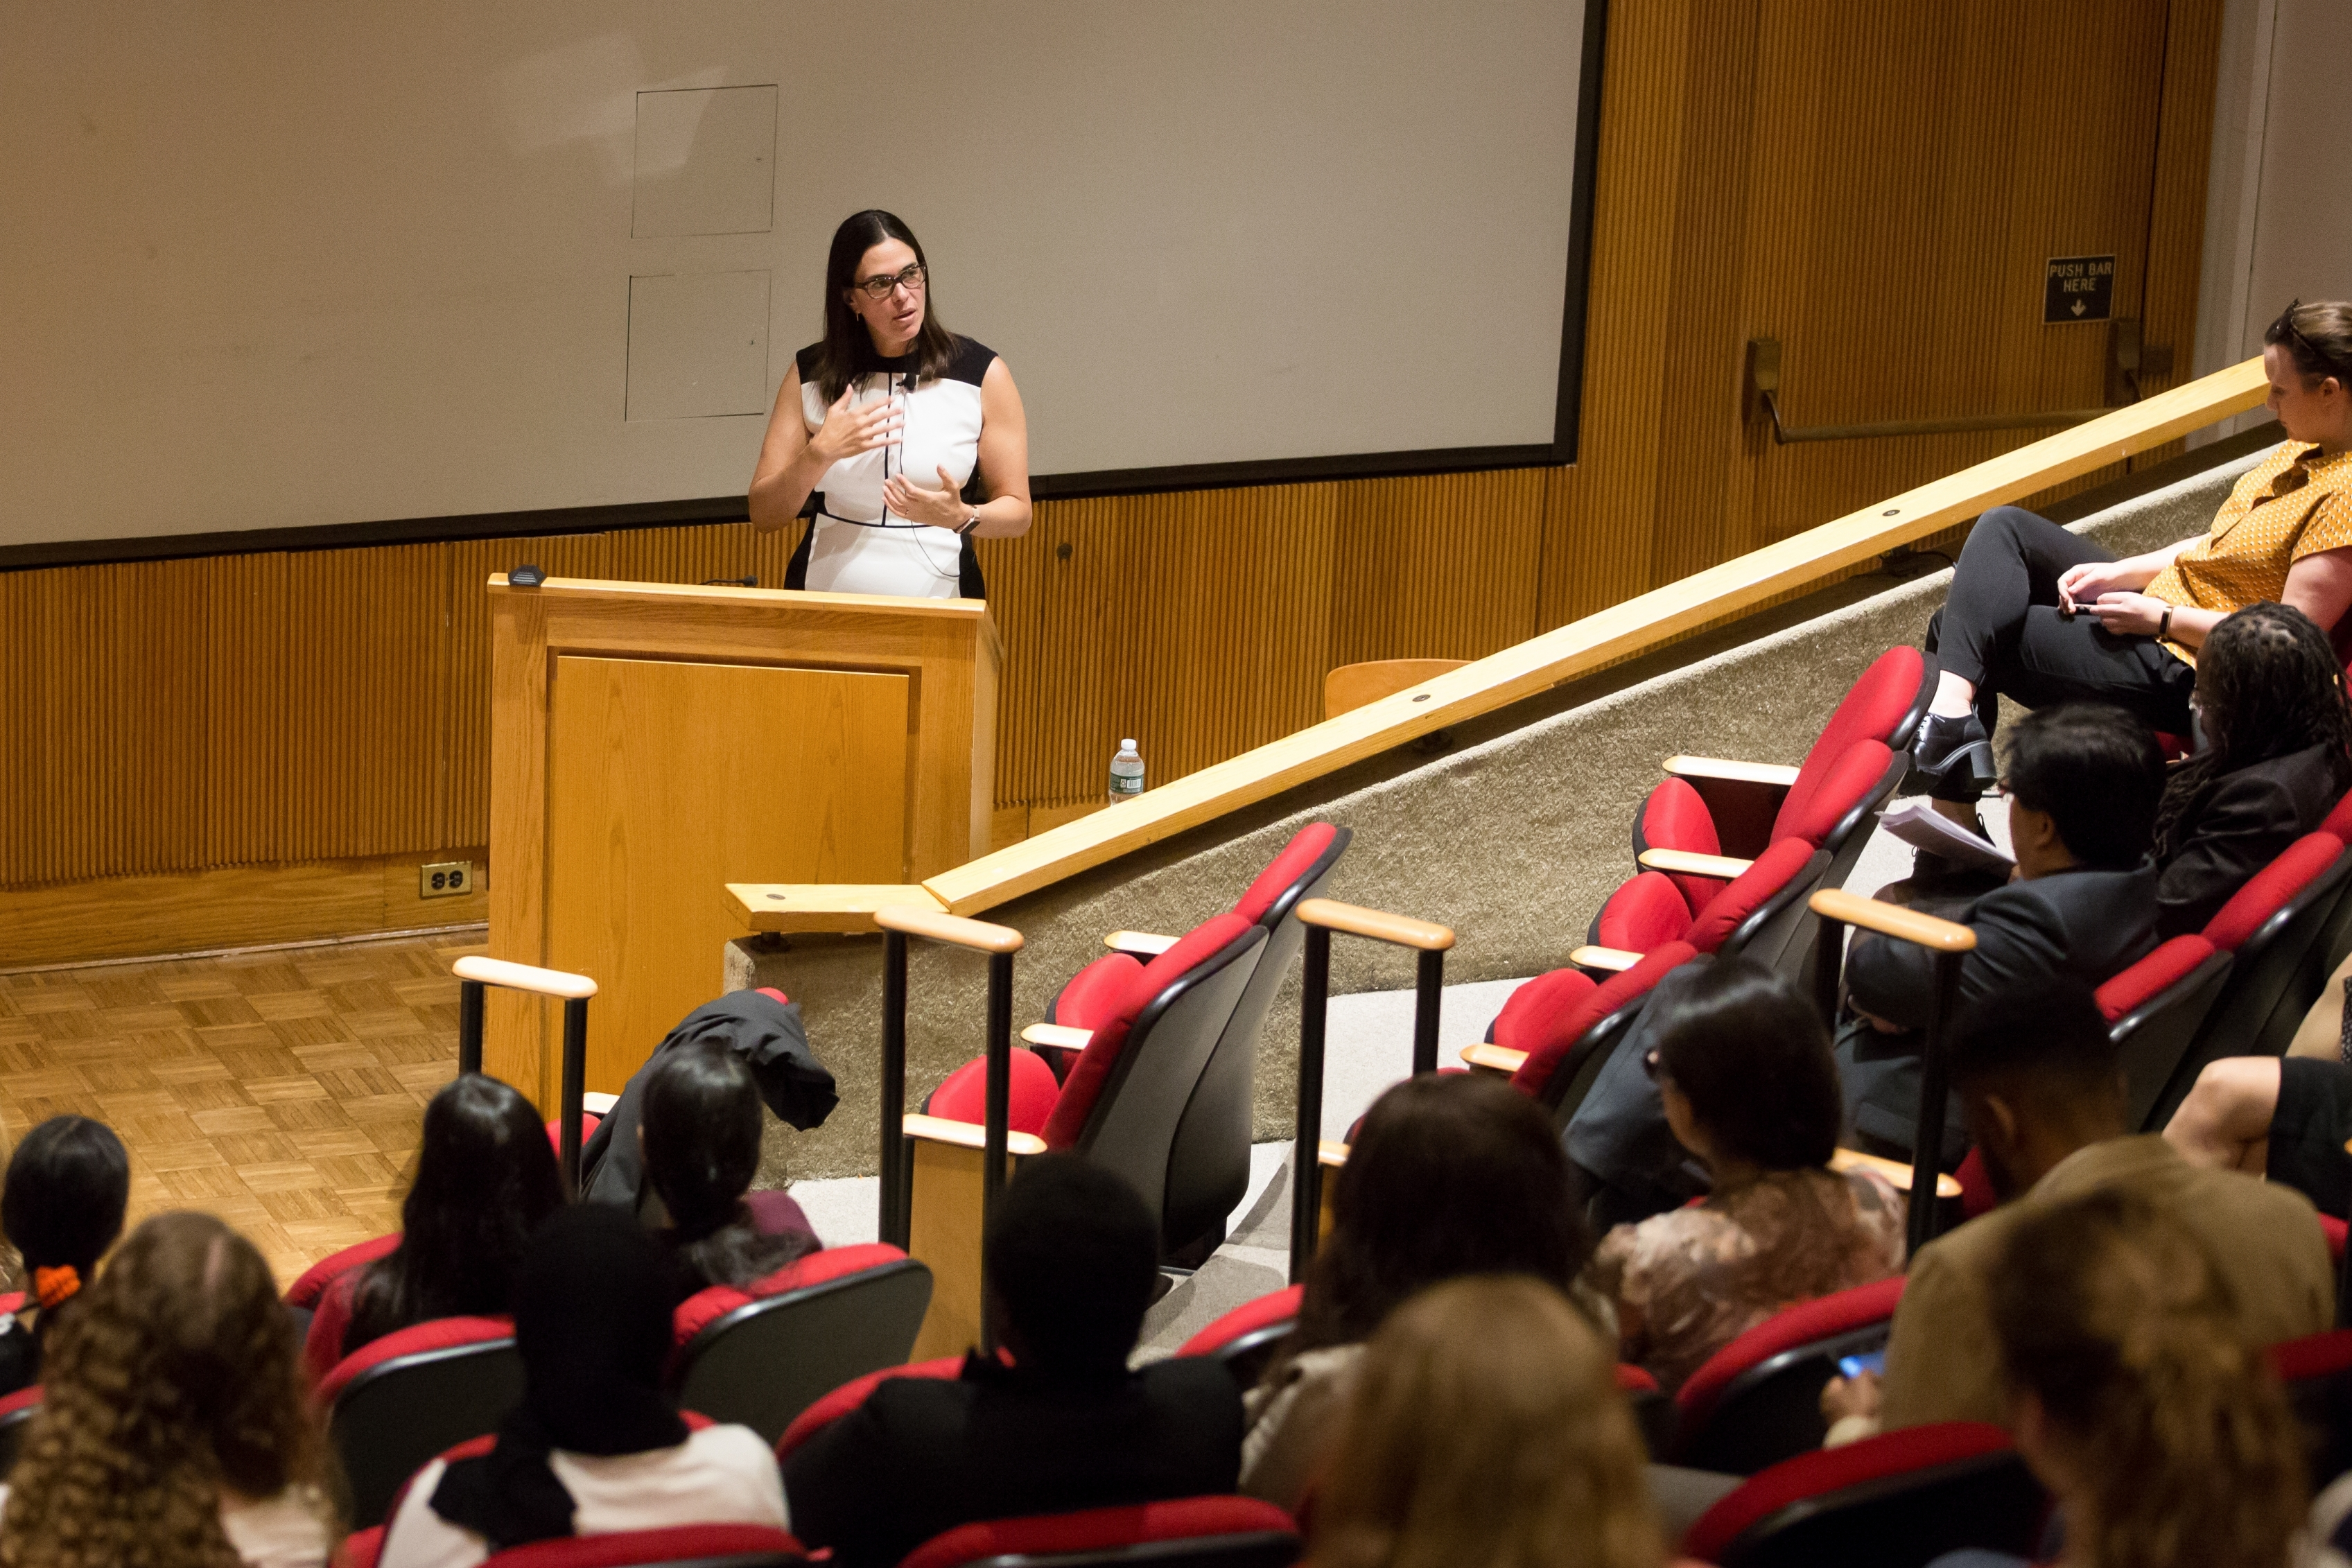 Dr. Sian Beilock, president of Barnard College, gives a keynote address at Weill Cornell Medicine during Diversity Week